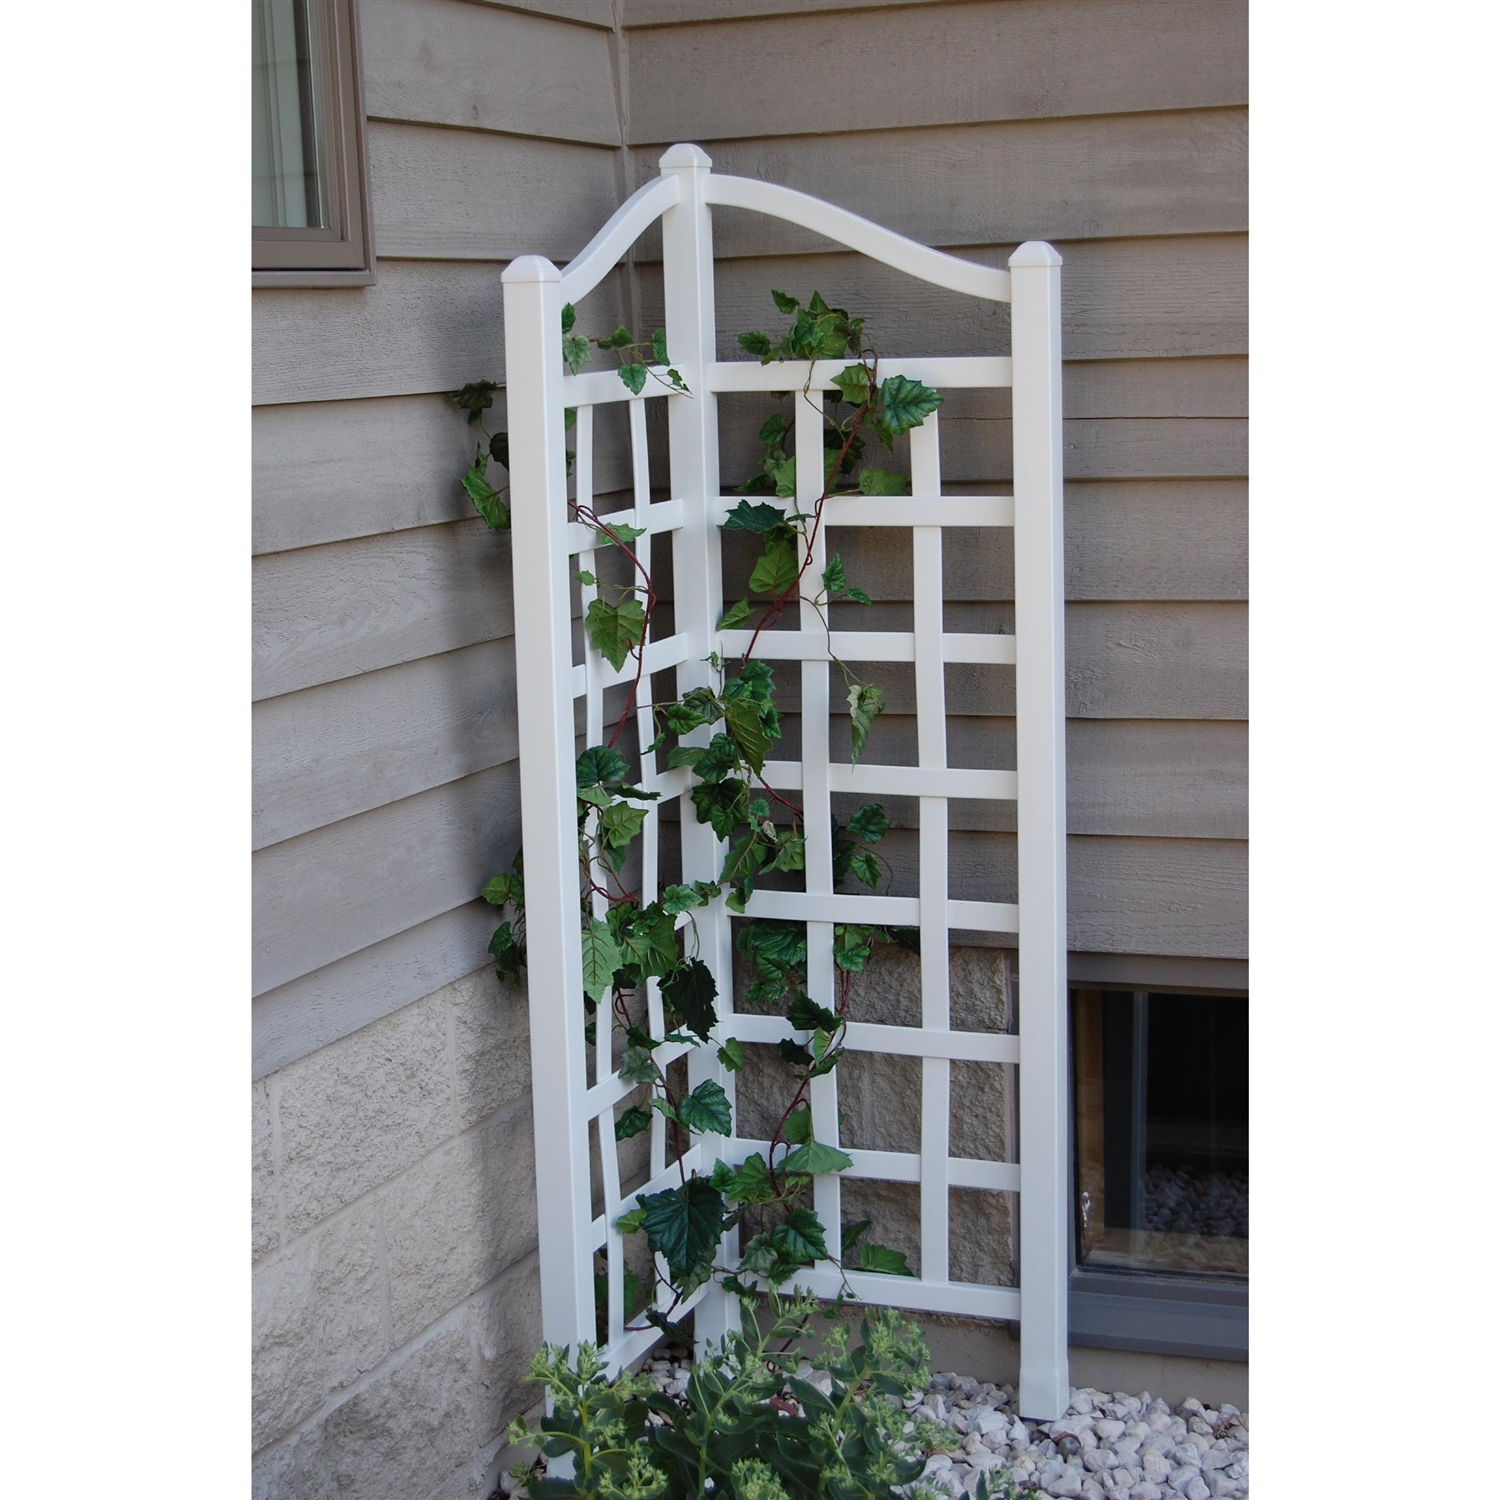 5.5 Ft Corner Trellis in White Vinyl - Made in USA, DOVCT119815 :  This 5.5 Ft Corner Trellis in White Vinyl - Made in USA is constructed of the highest-quality vinyl, which contains the greatest concentration of titanium dioxide available. Titanium dioxide is a powerful UV stabilizer that protects the vinyl from the harmful ultraviolet rays of the sun. This trellis will never fade, crack, peel, or rot, and there is no need to paint it. Dimensions: 40.5W x 66H inches. All Dura-Trel products come with an industry leading 20-year warranty.